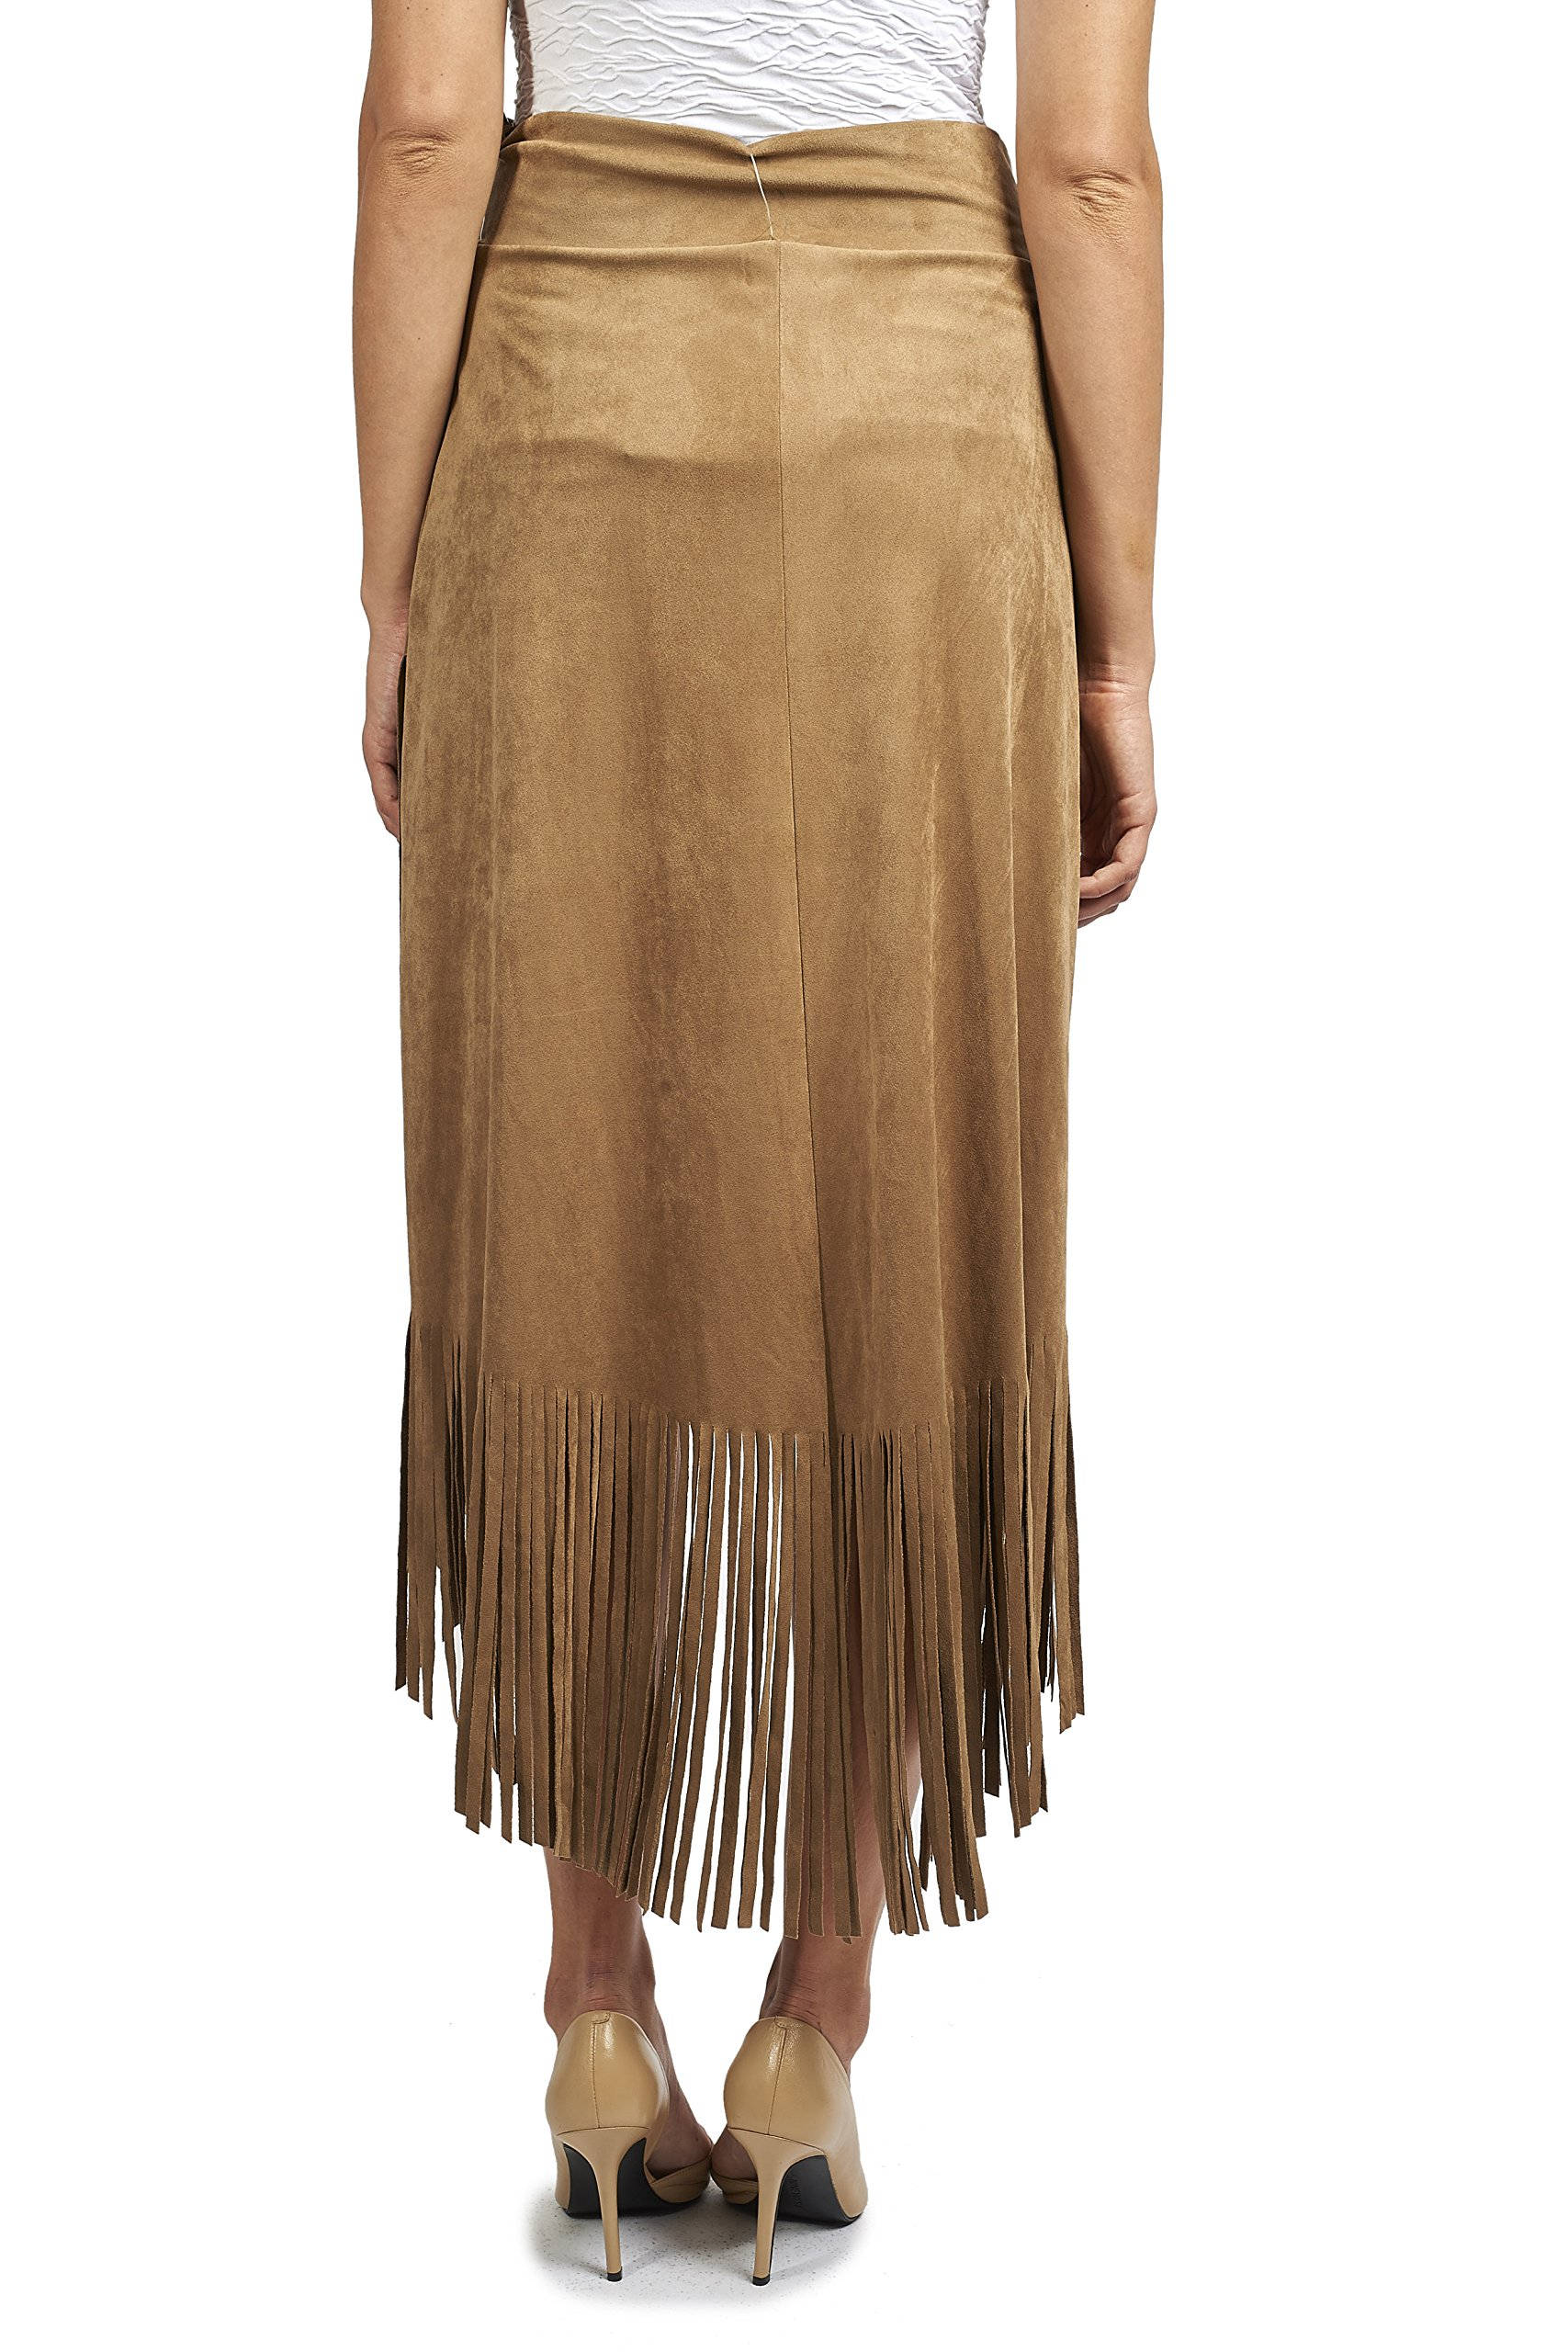 Joseph Ribkoff Faux Suede Asymmetric Skirt with Fringe Style 171388 - Size 14 by Joseph Ribkoff (Image #2)